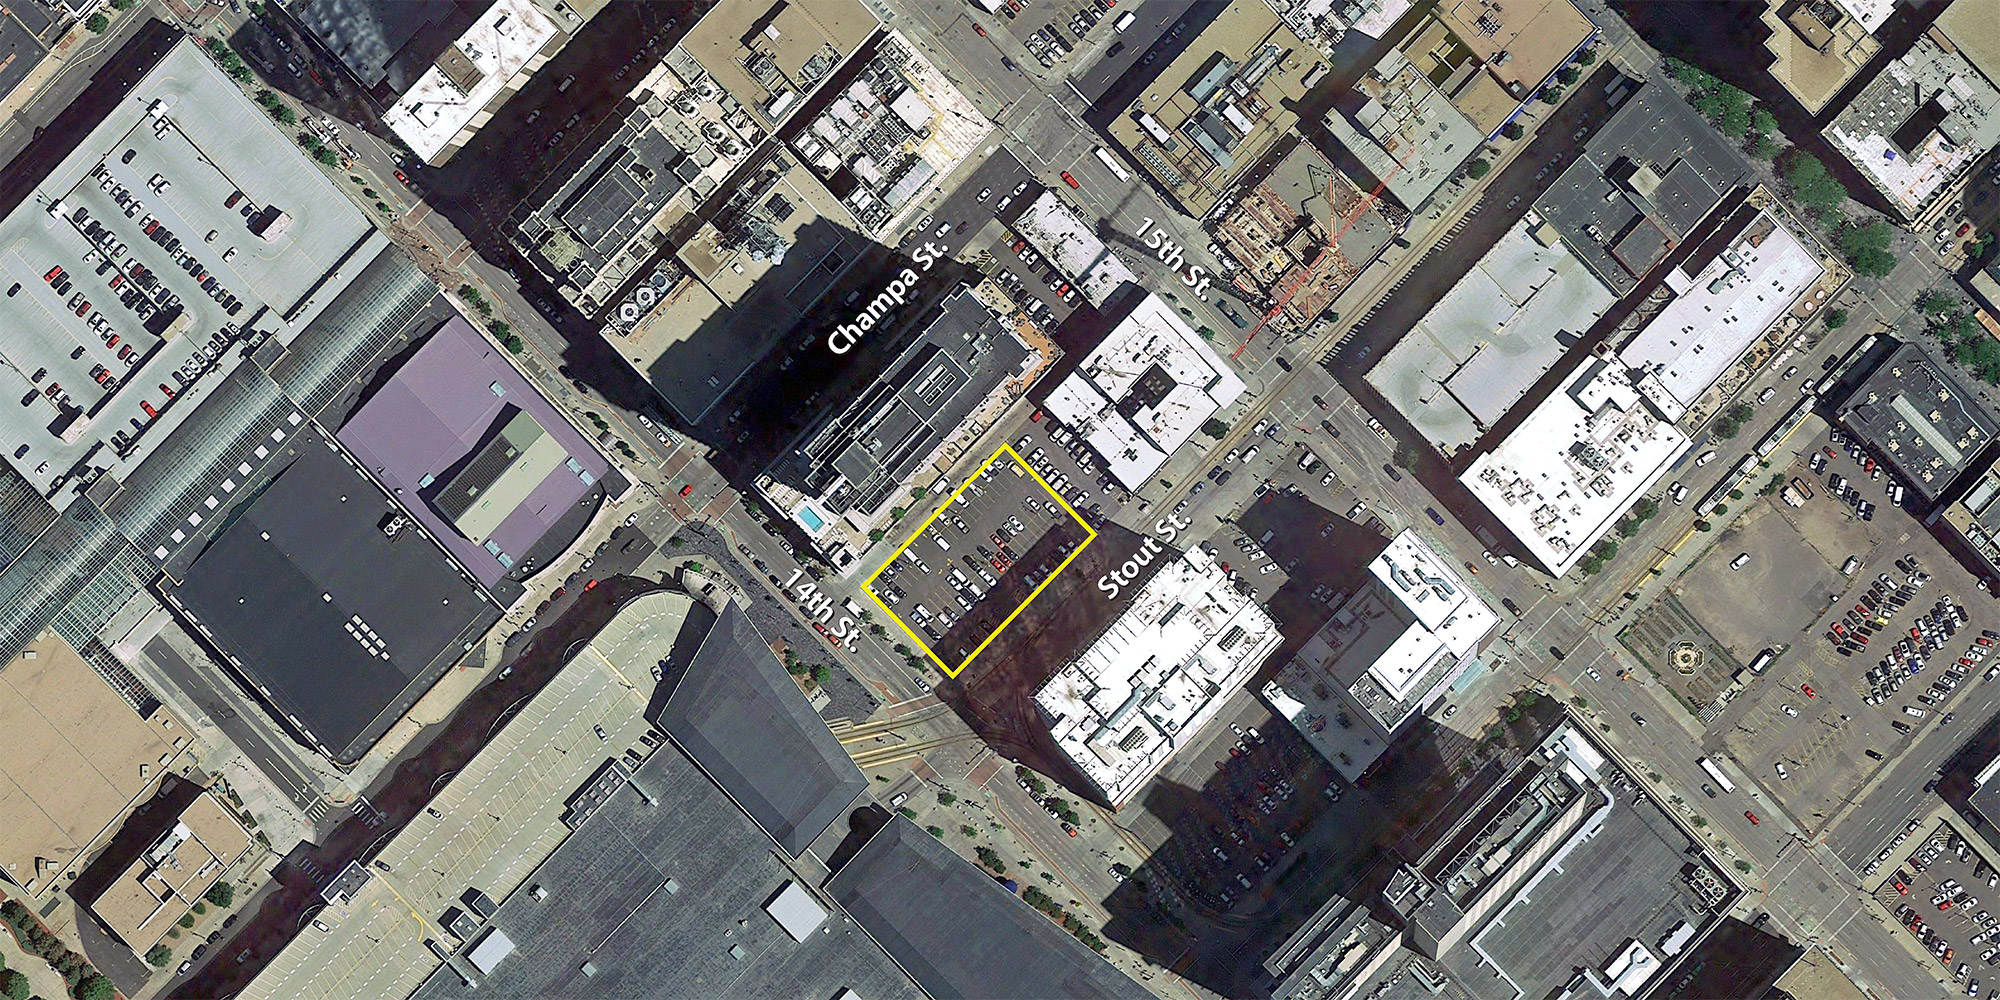 Proposed 27-story hotel site, base aerial courtesy of Google Earth